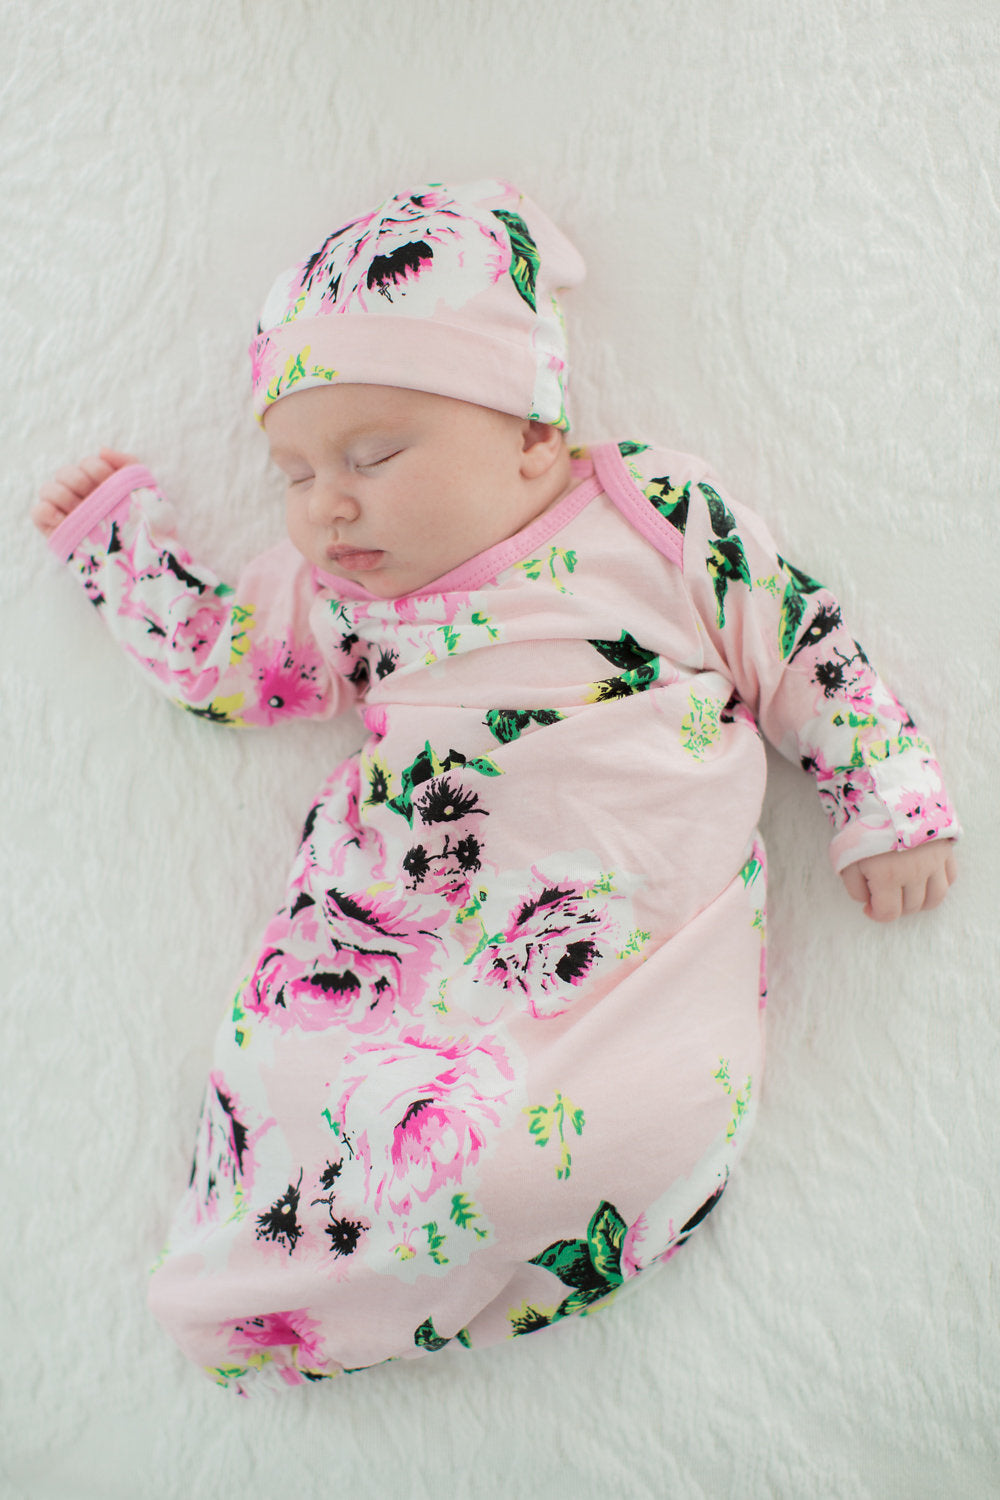 Amelia Nursing Nightgown Matching Baby Gown Hat Set Gownies